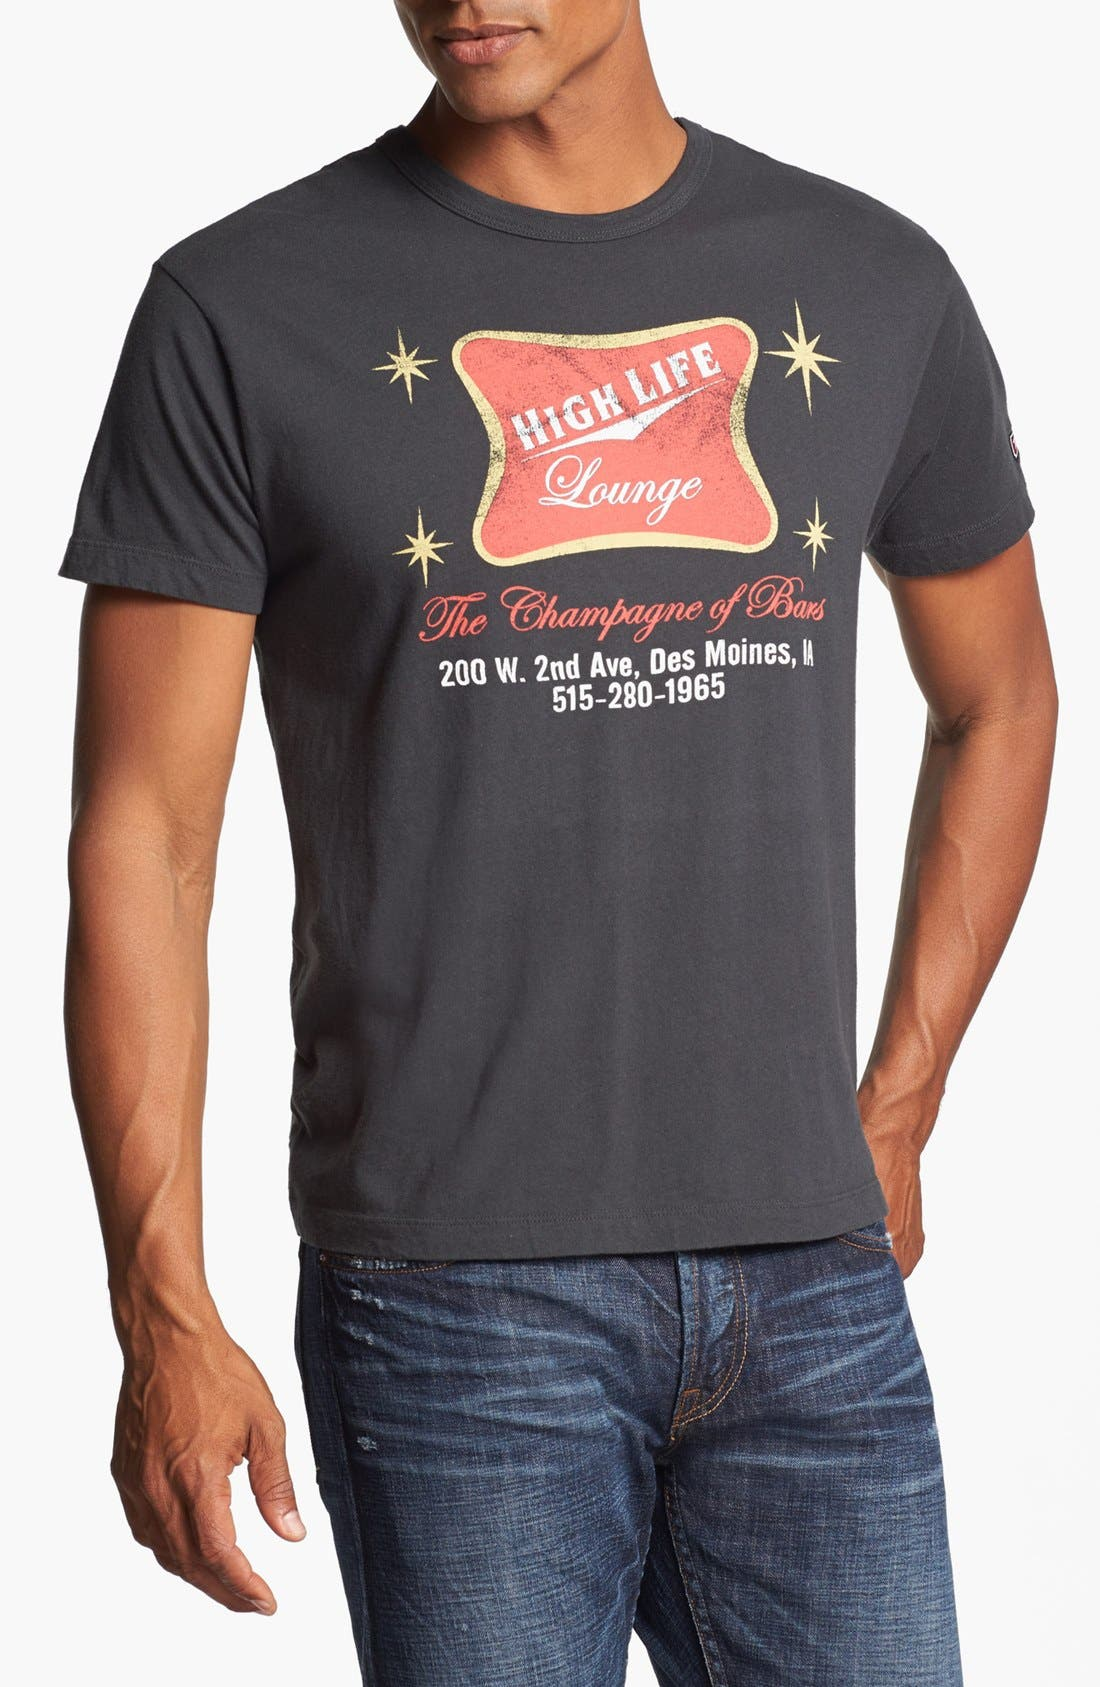 Main Image - Tailgate 'High Life Lounge' Trim Fit T-Shirt